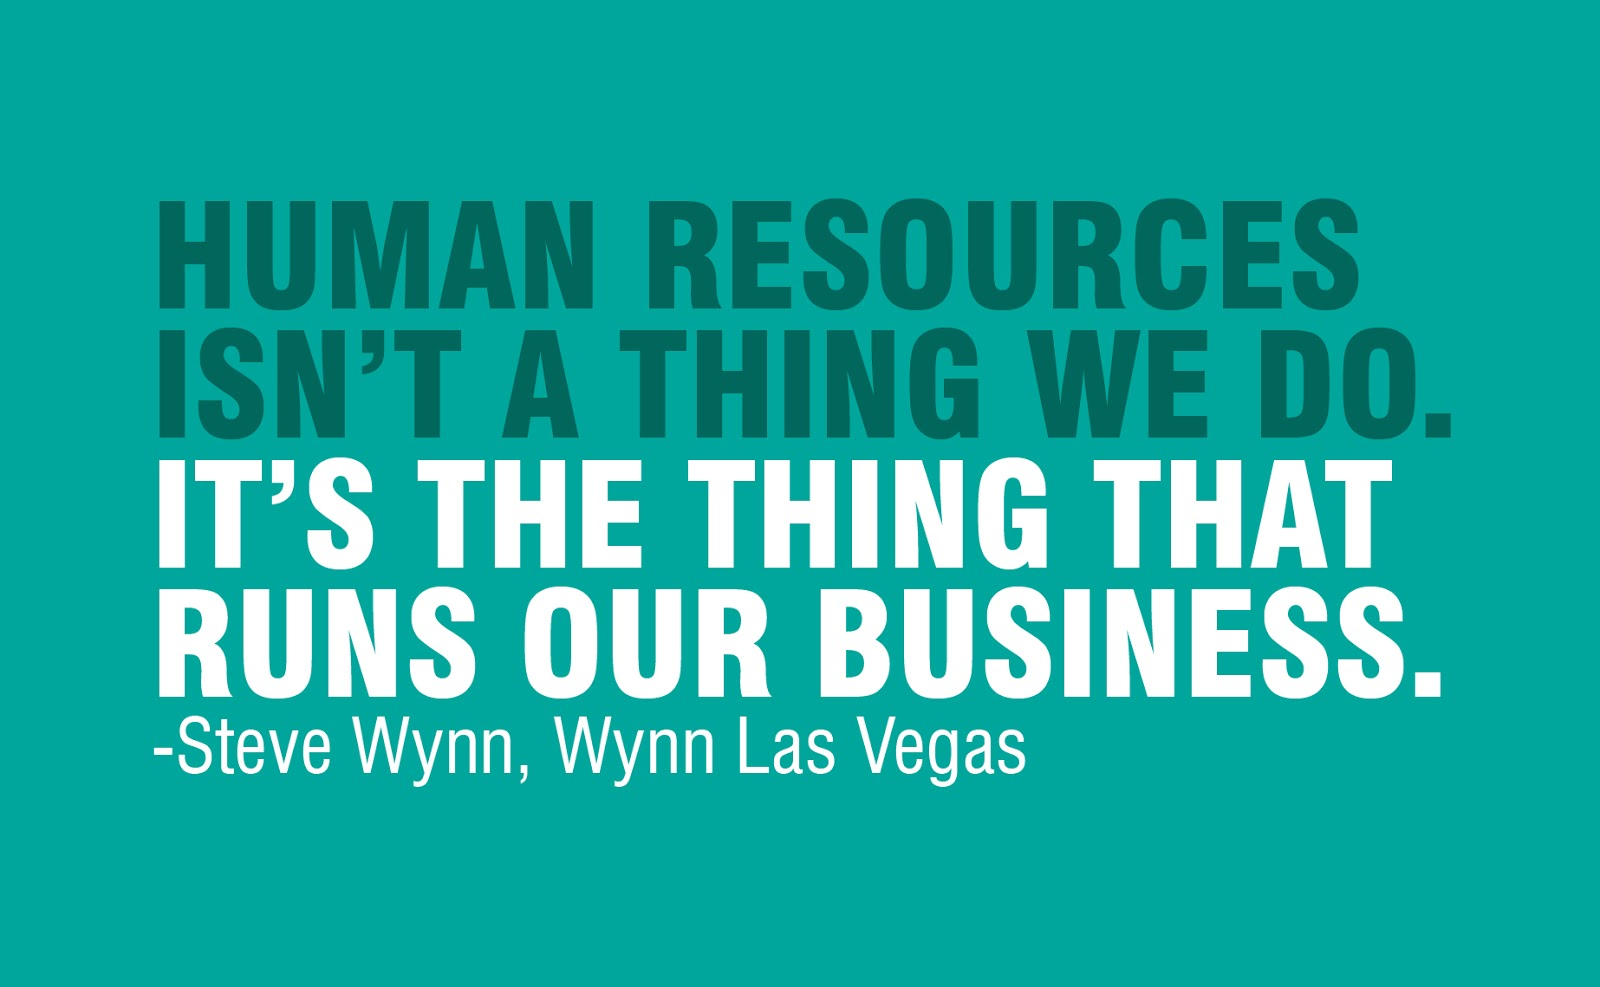 """Human Resources isn't a think we do. It's the thing that runs our business."" – Steve Wynn, Wynn Las Vegas"